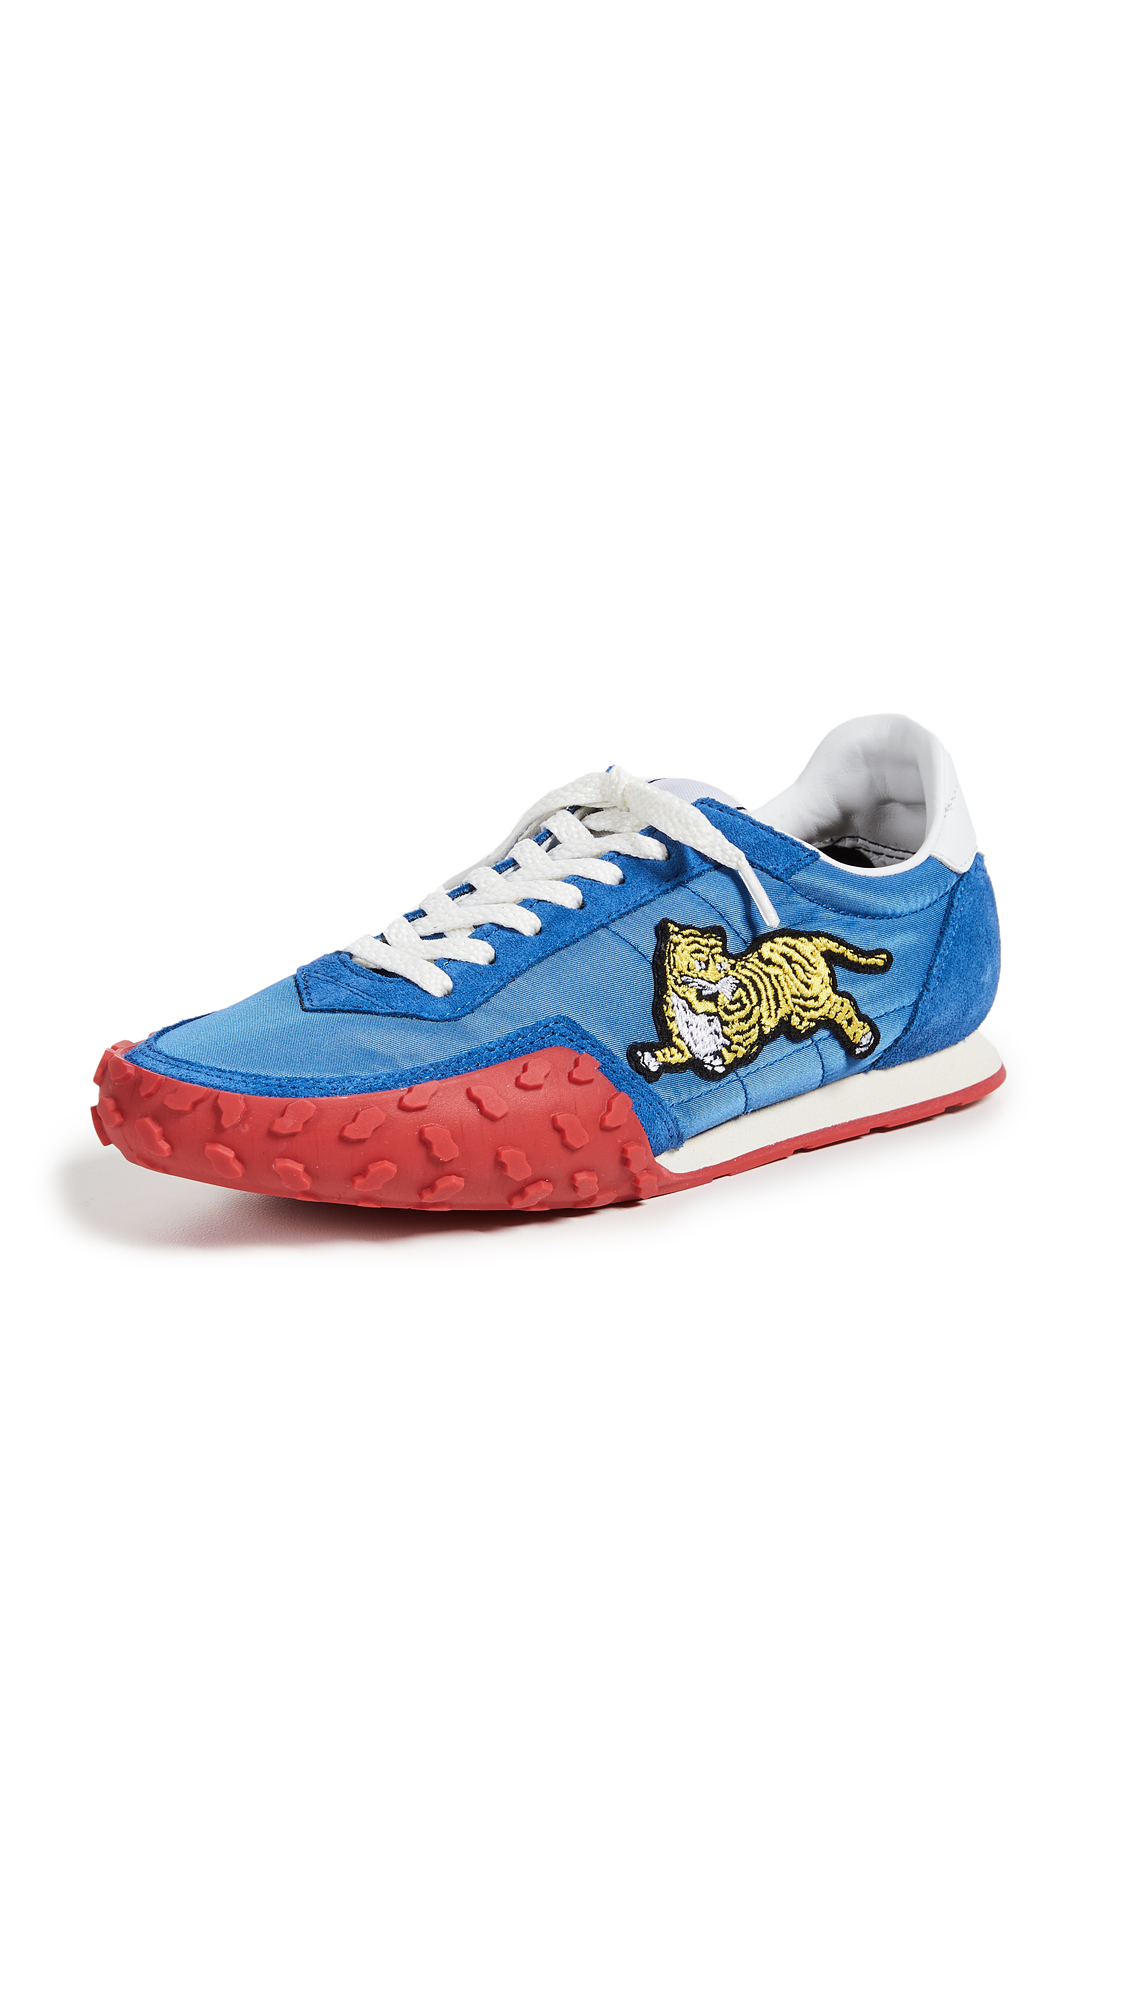 KENZO Kenzo Move Sneakers - French Blue